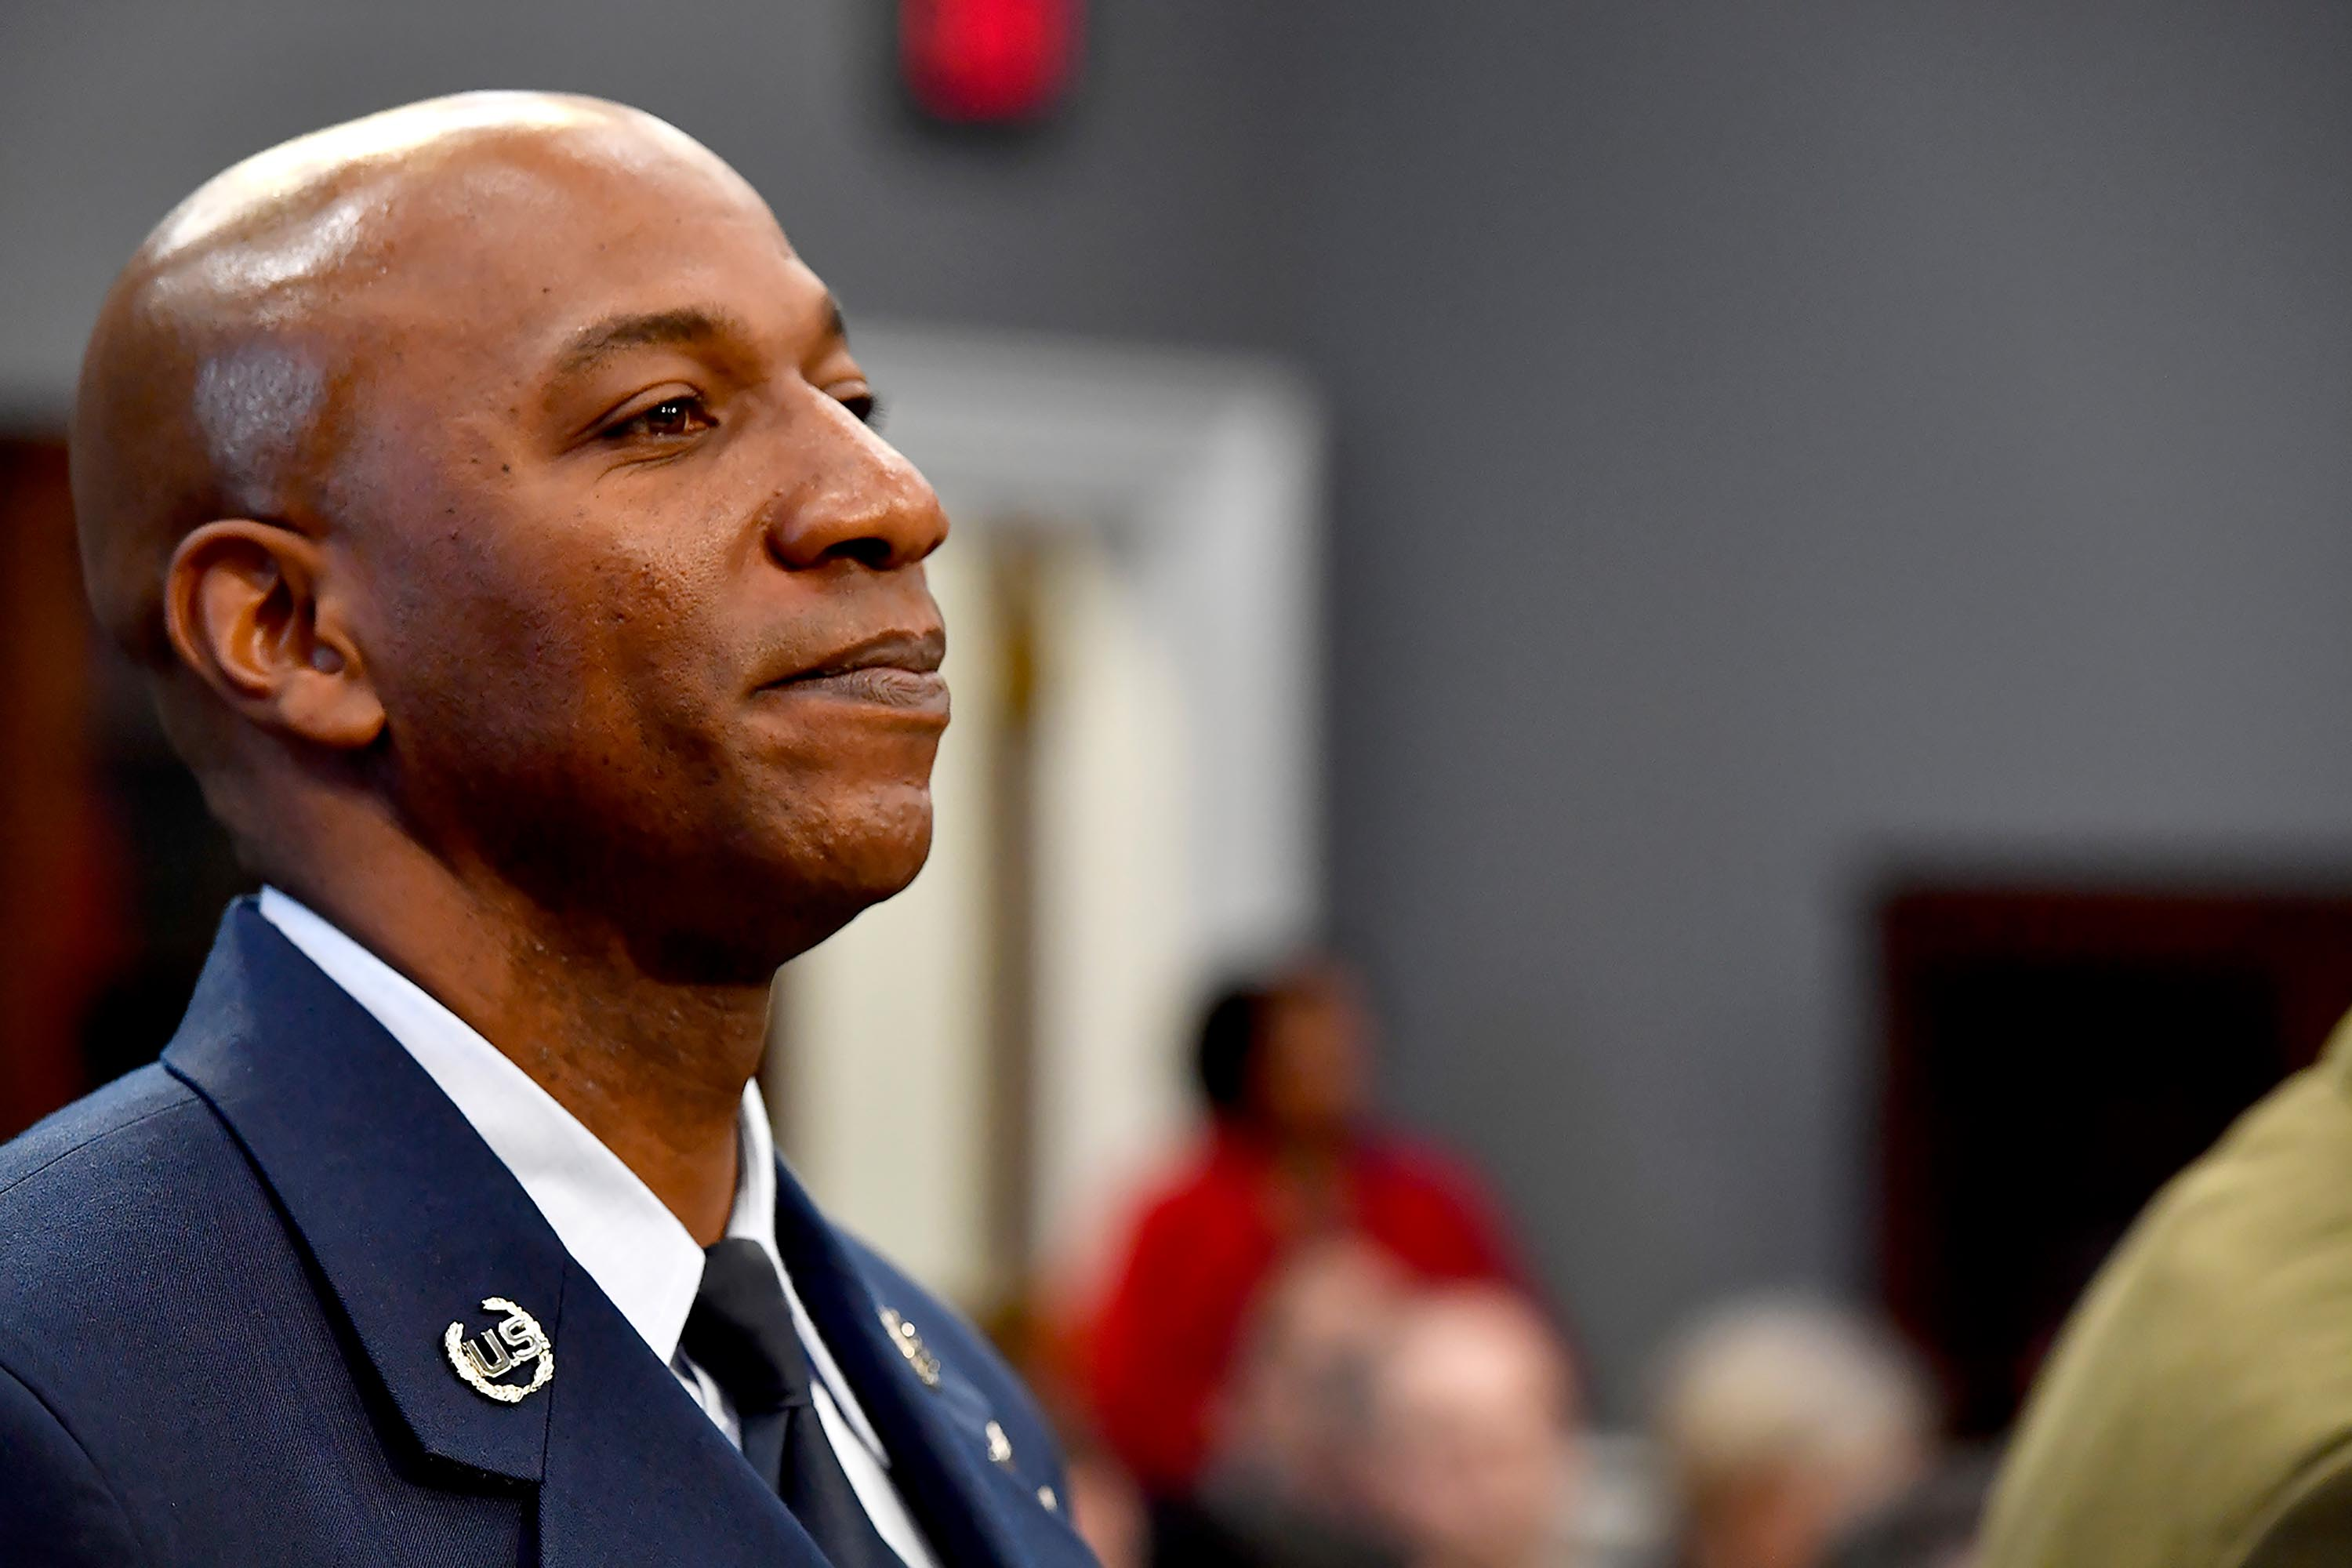 Top Air Force enlistee posts passionate plea for justice